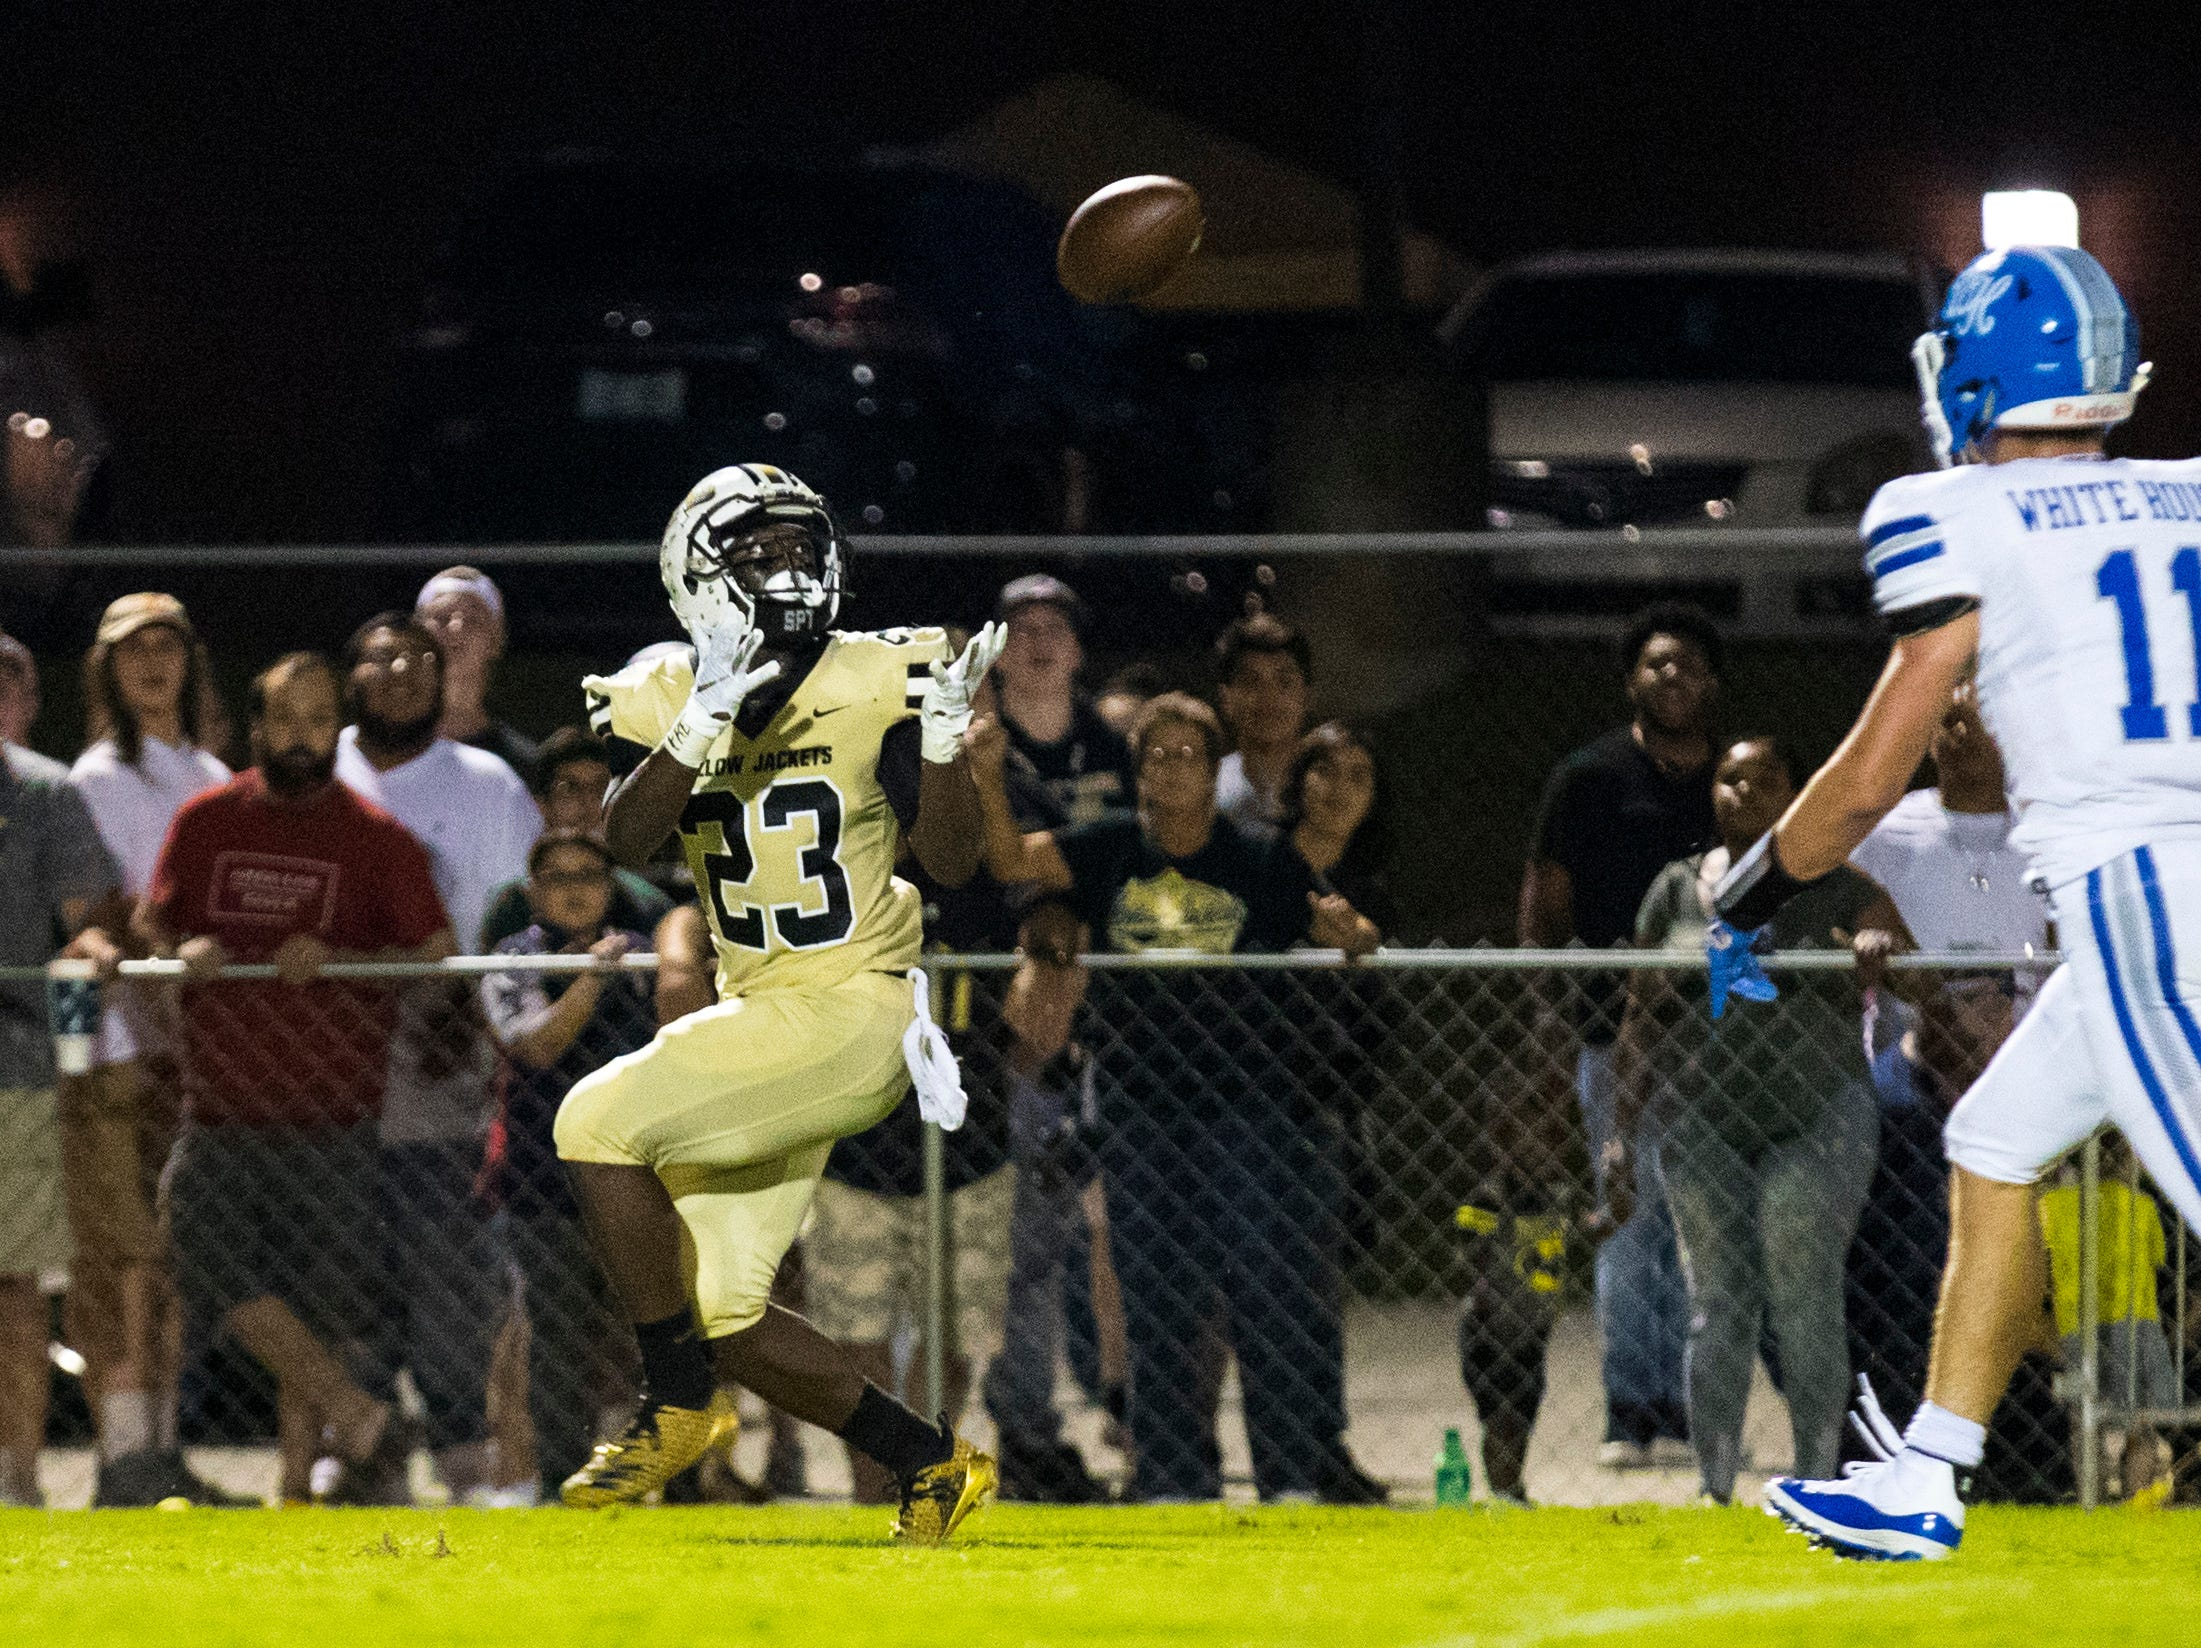 Springfield's Dayron Johnson (23) catches a long ball during Springfield's game against White House at Springfield High School in Springfield on Friday, Sept. 14, 2018.